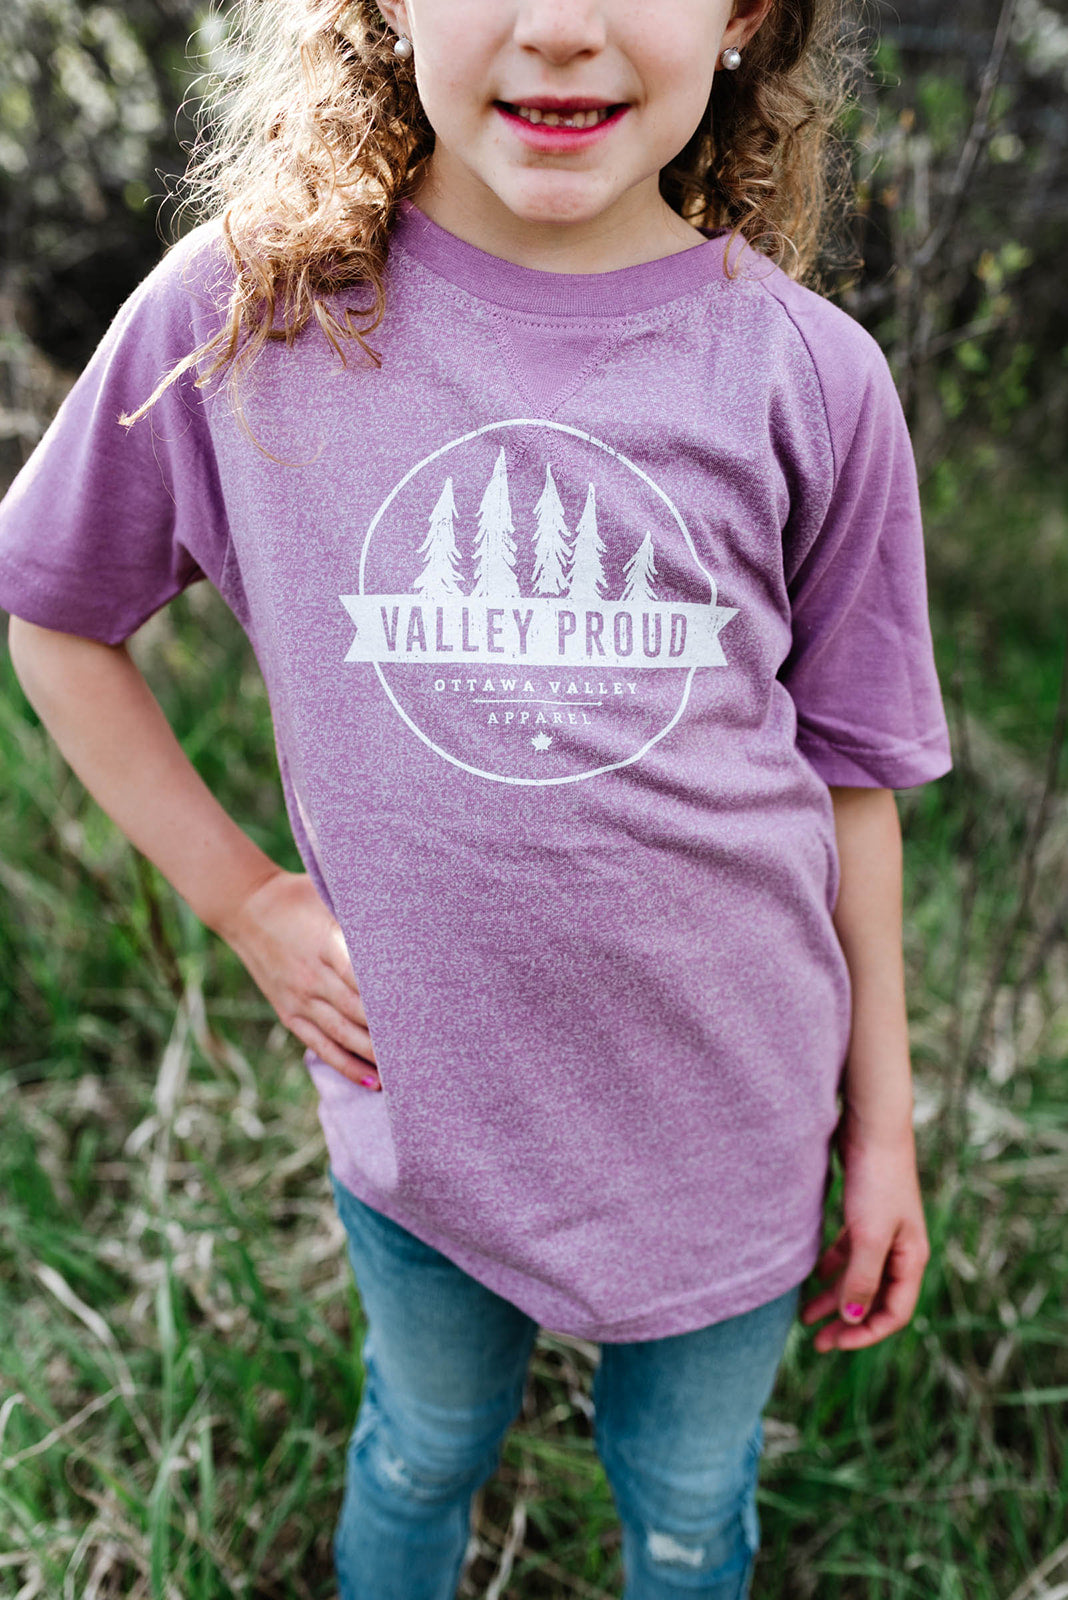 Valley Proud Toddler Tee - Lilac